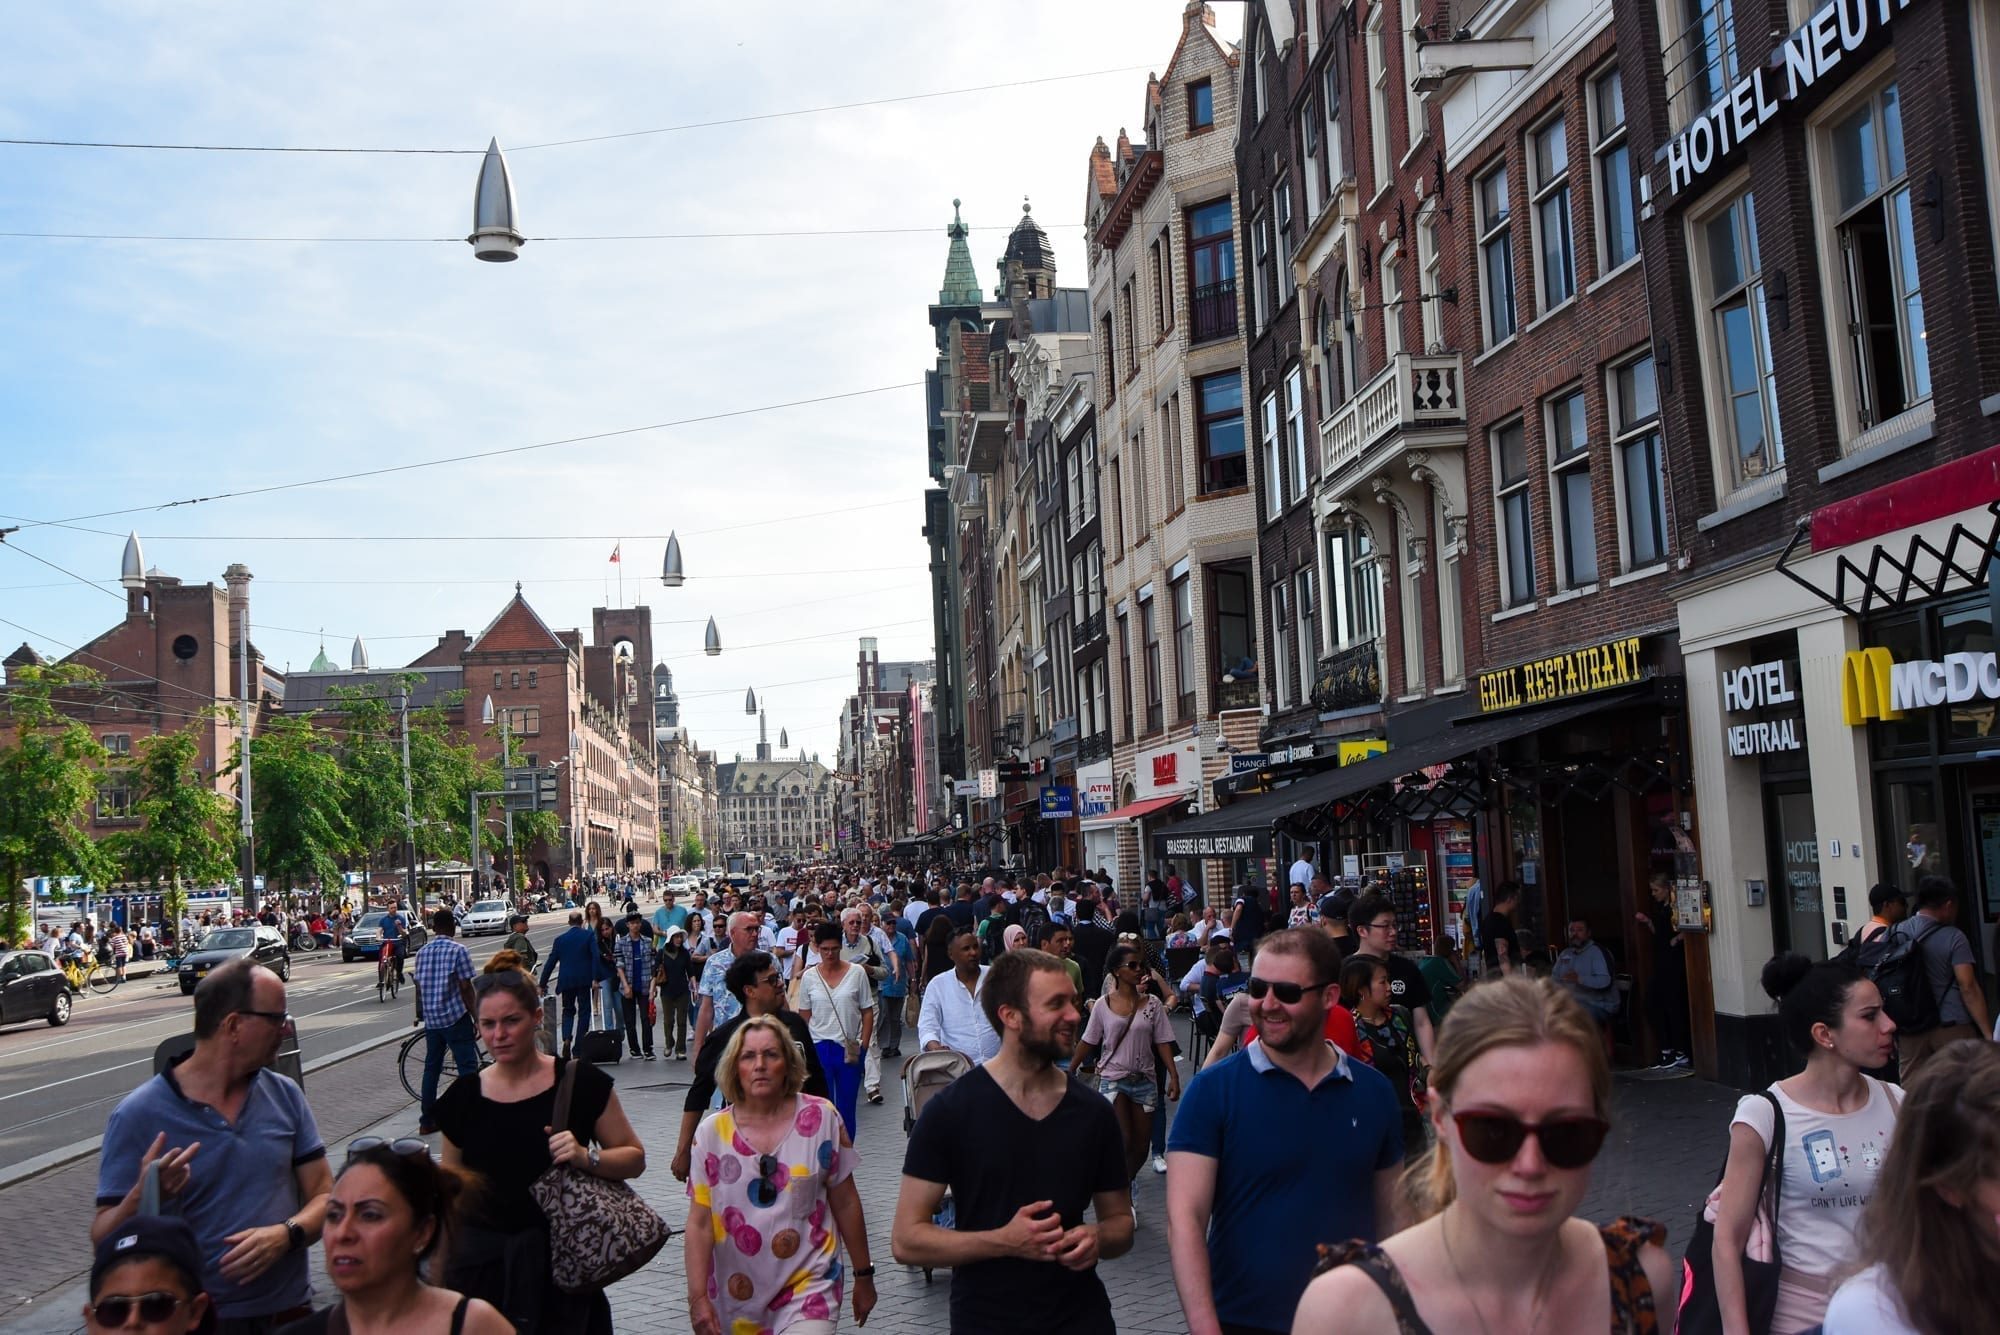 the street in Amsterdam with many people on it